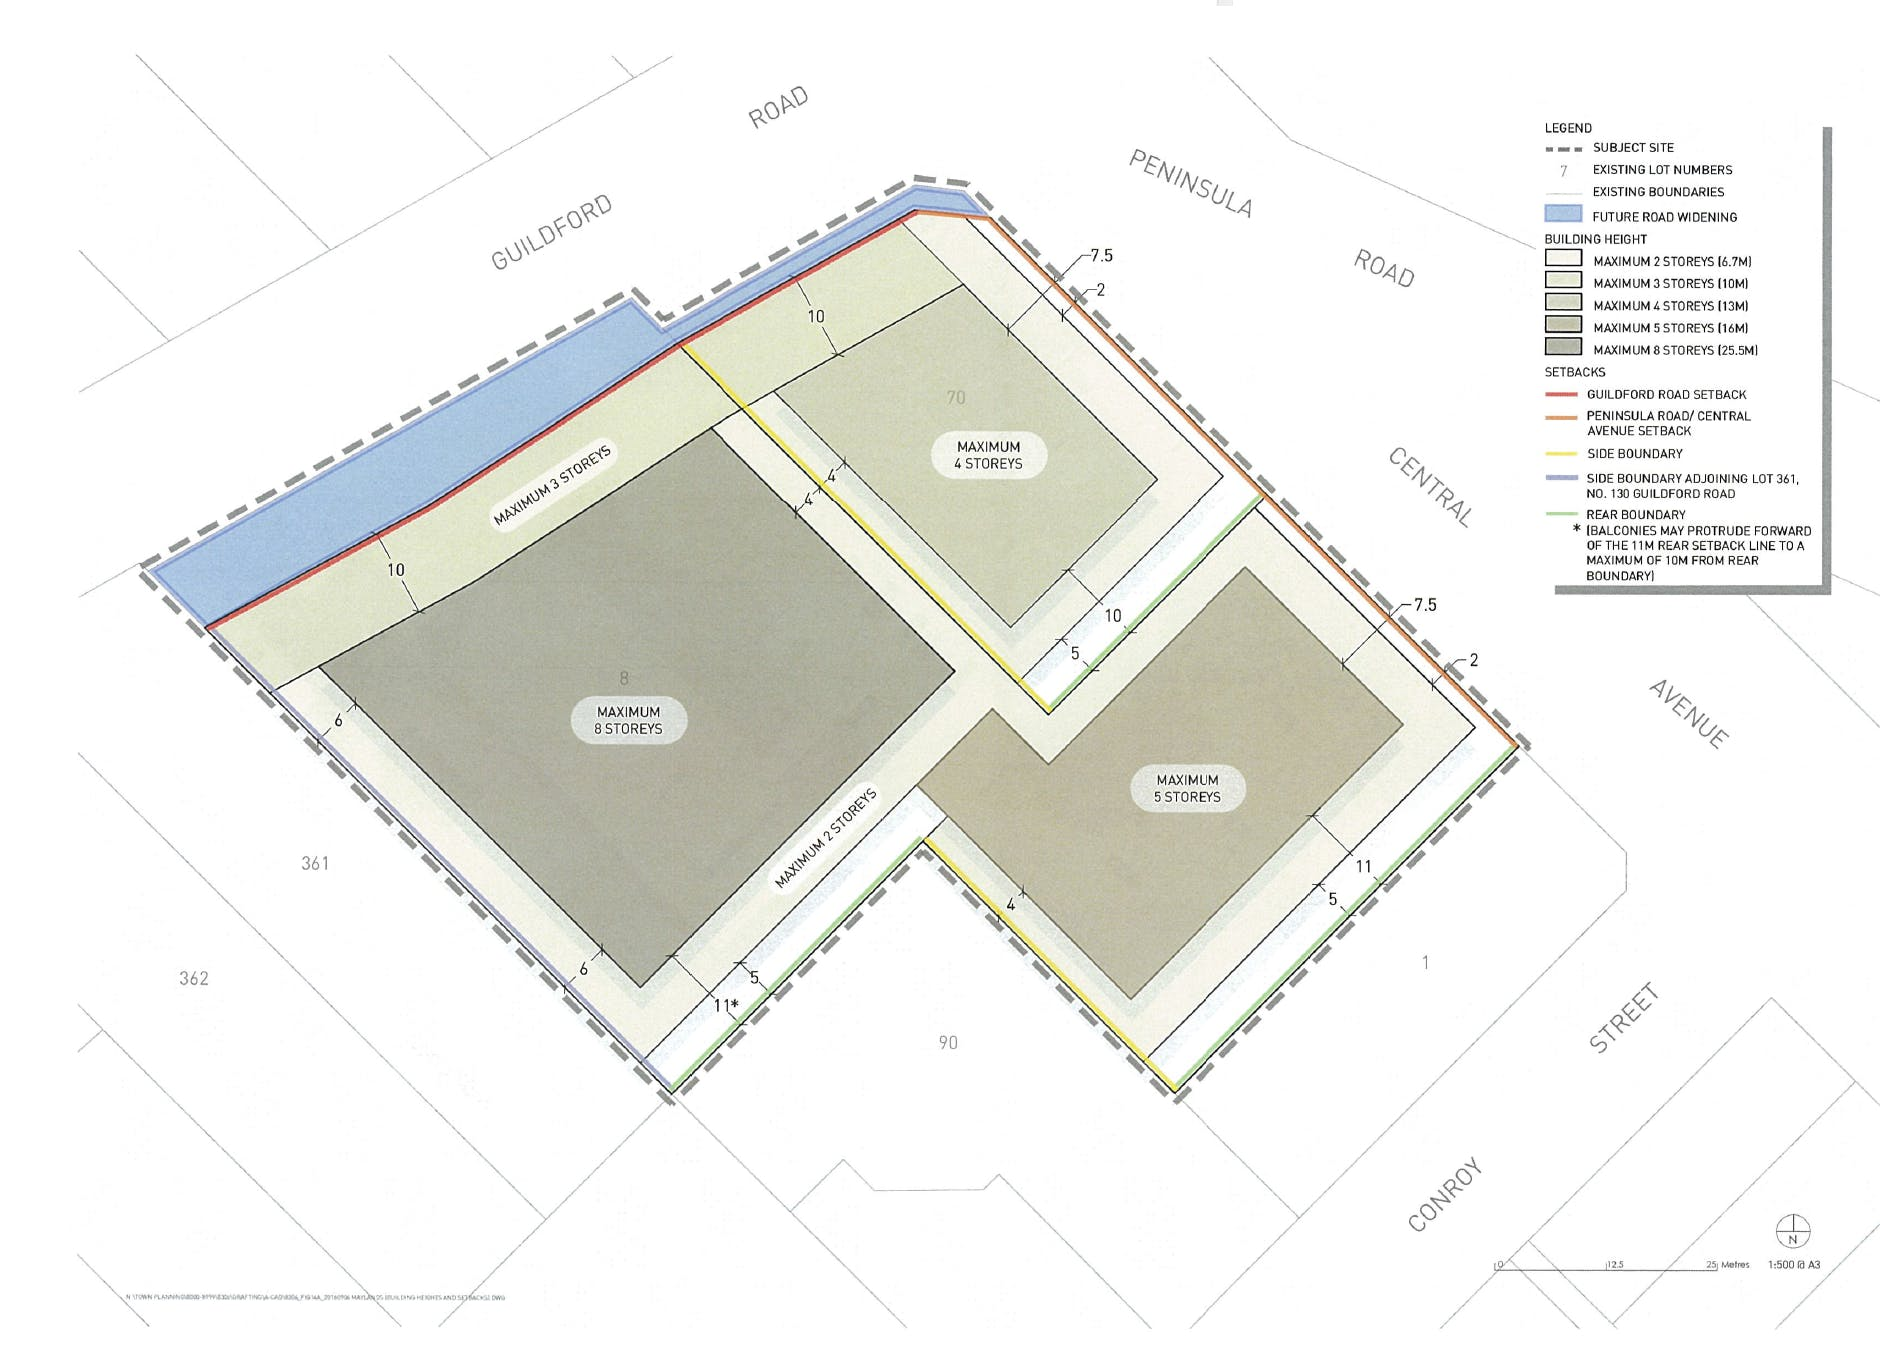 Proposed Building Envelopes and Heights